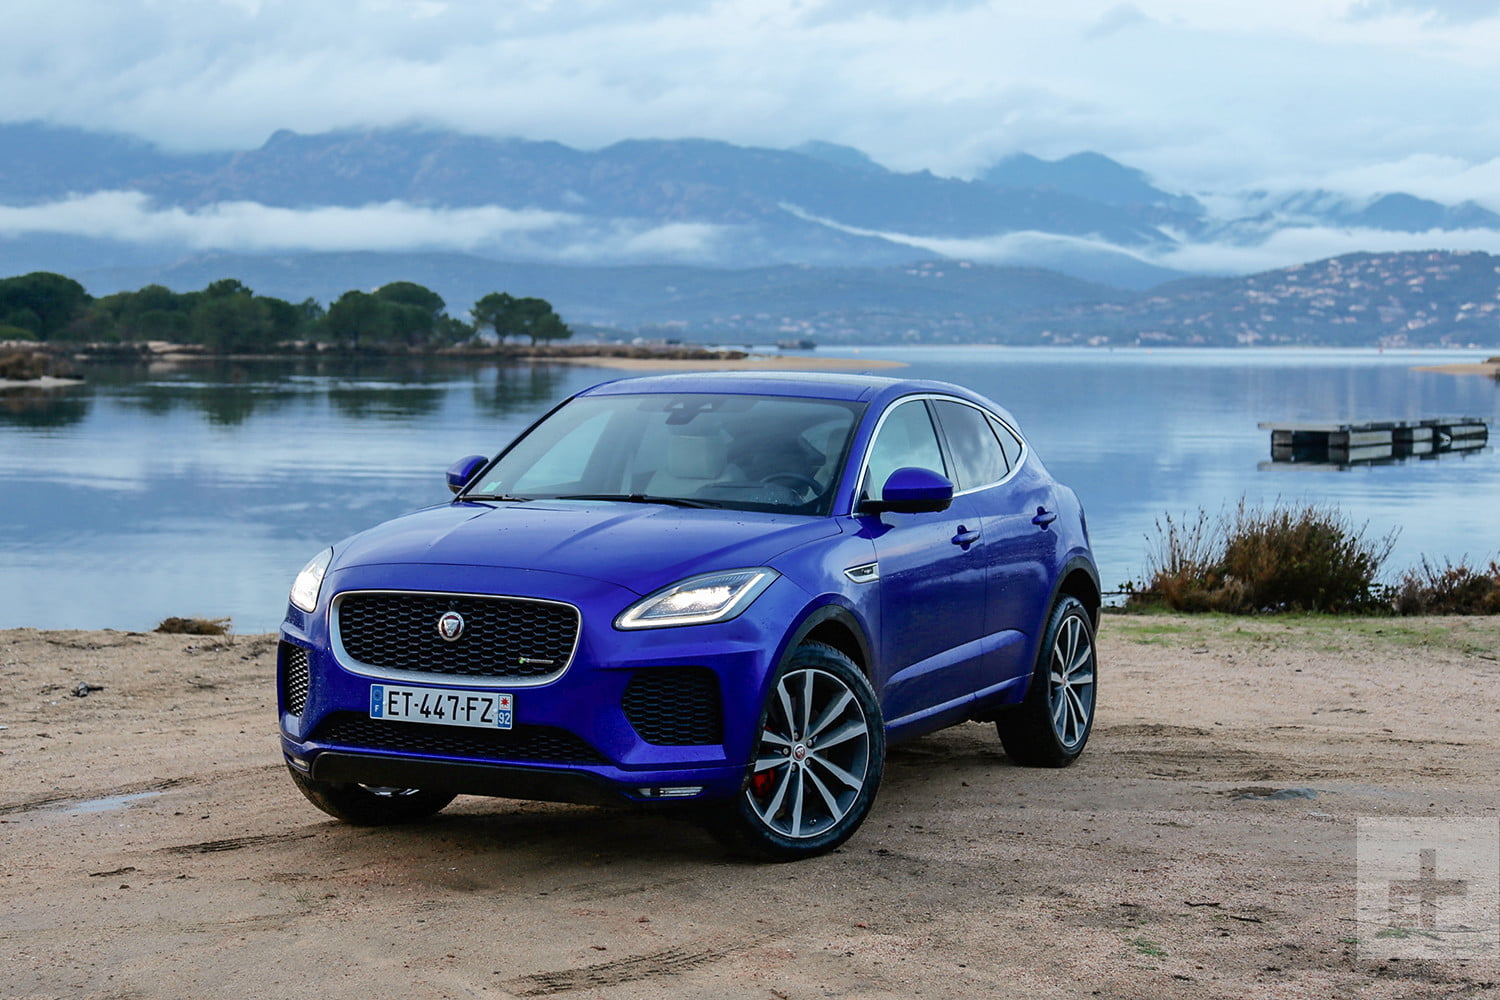 2018 jaguar e pace first drive review digital trends. Black Bedroom Furniture Sets. Home Design Ideas